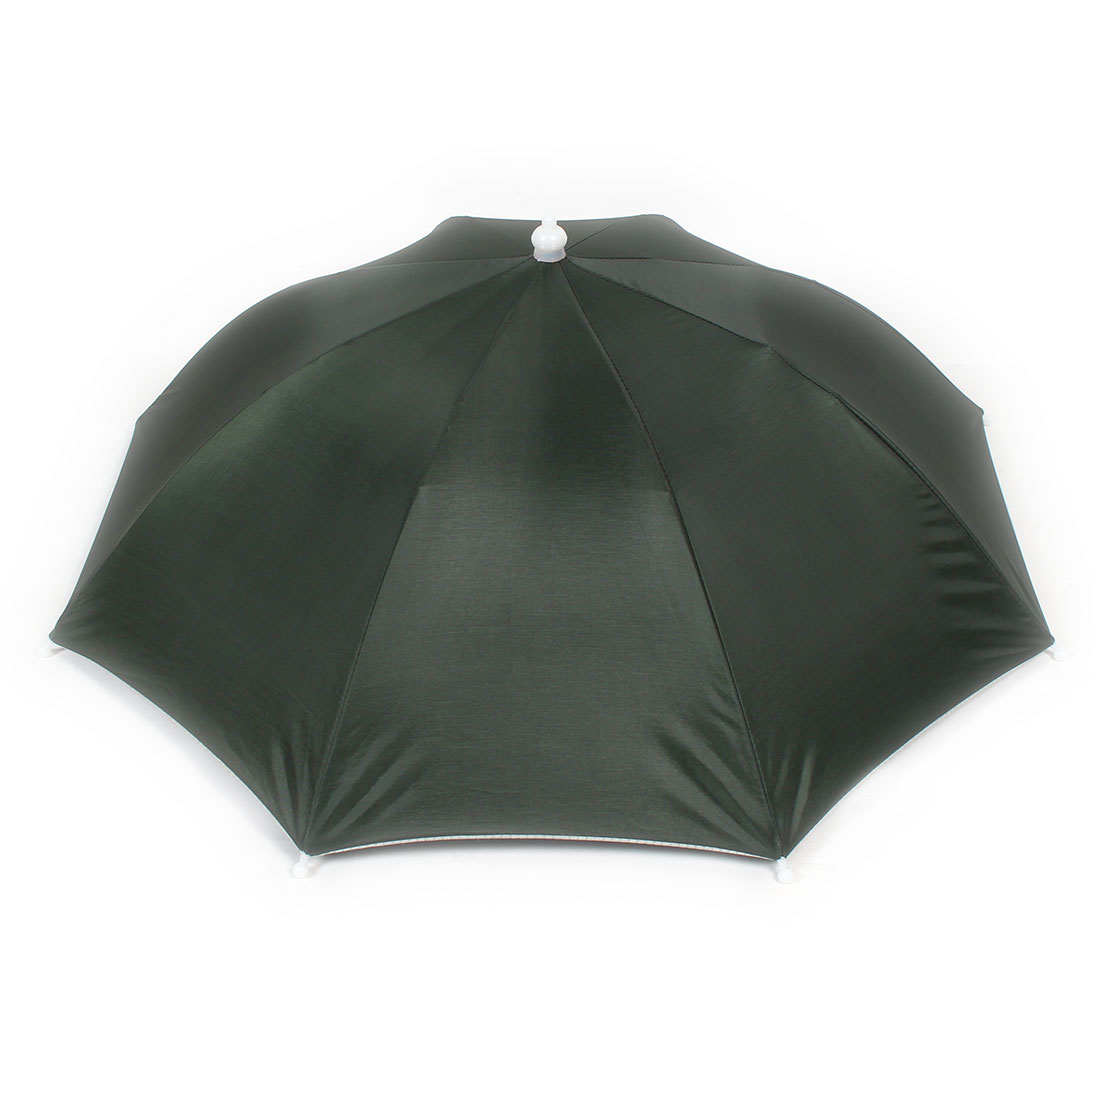 Elastic Headband Beach Umbrella Hat for Fishing Navy Green